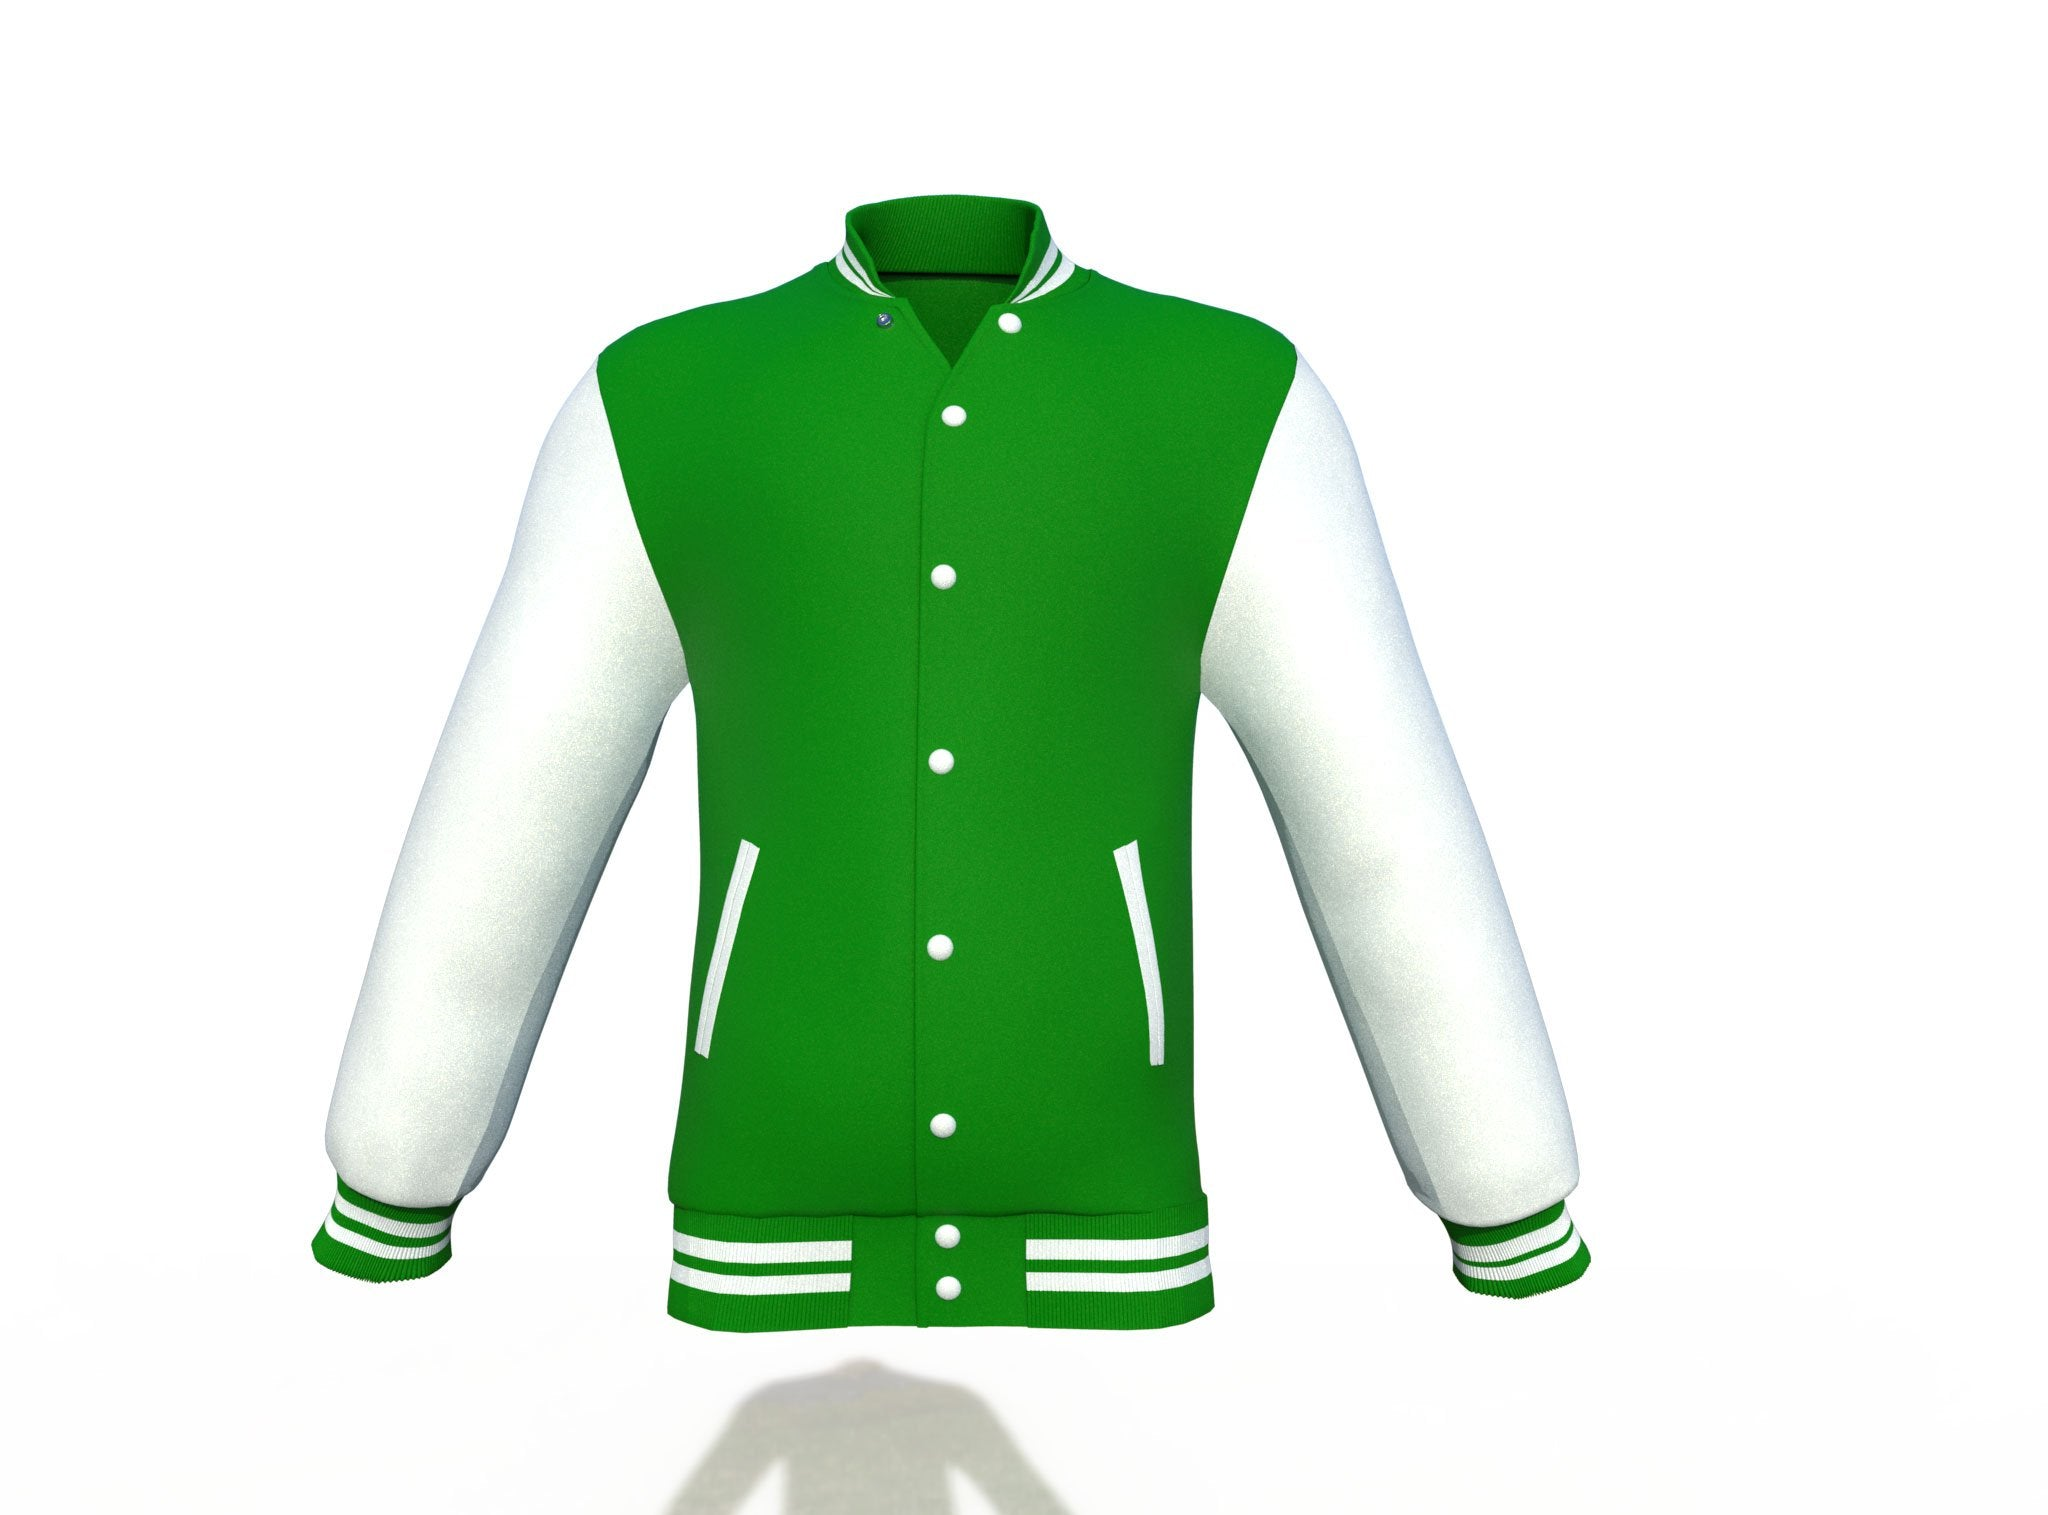 Dark Green Varsity Letterman Jacket with White Sleeves